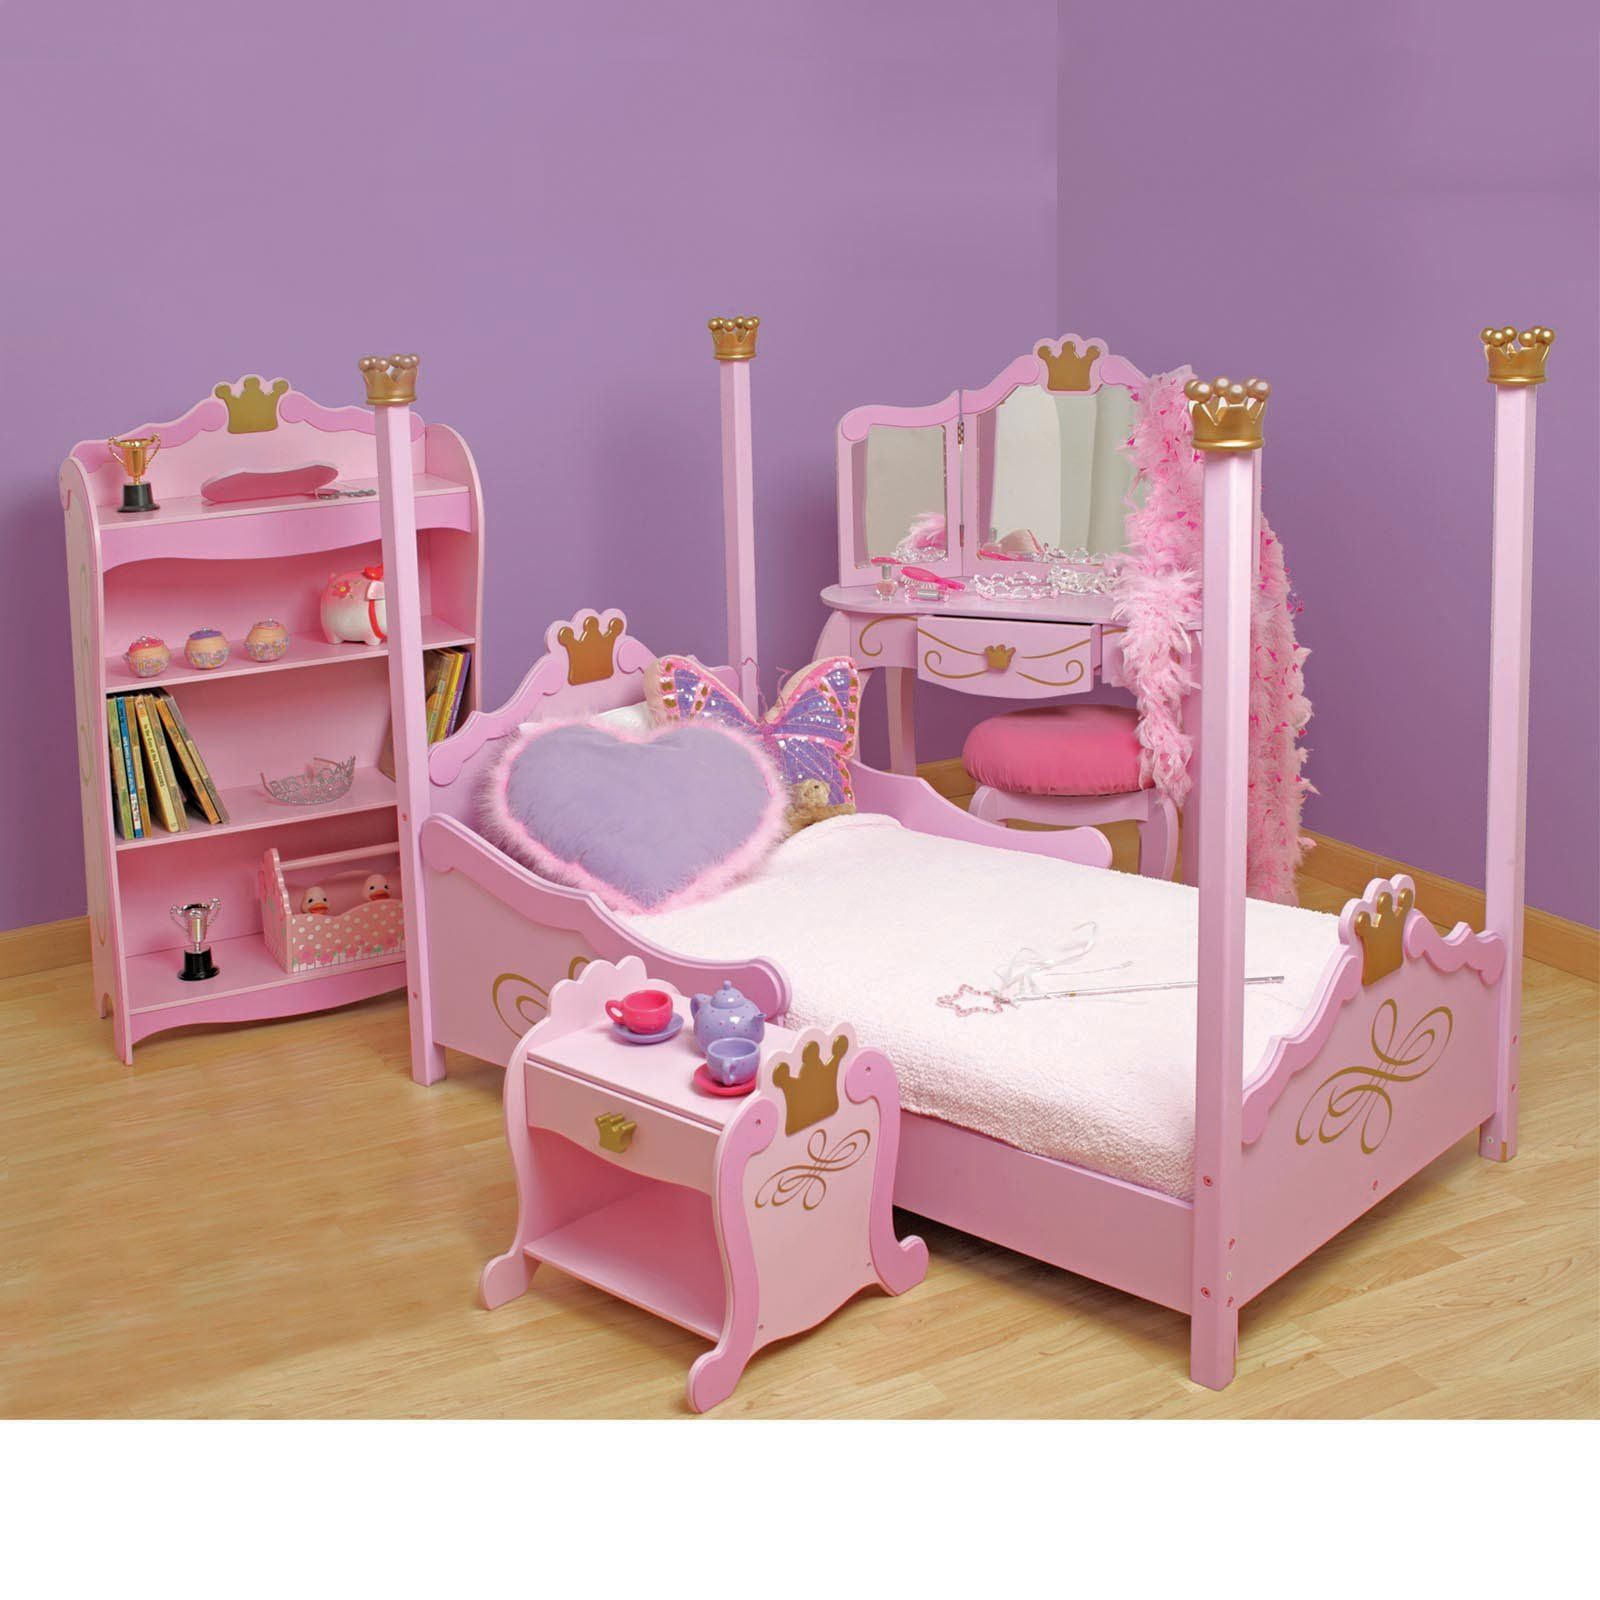 Girly Bedroom Accessories: Cute Toddler Beds For Girls